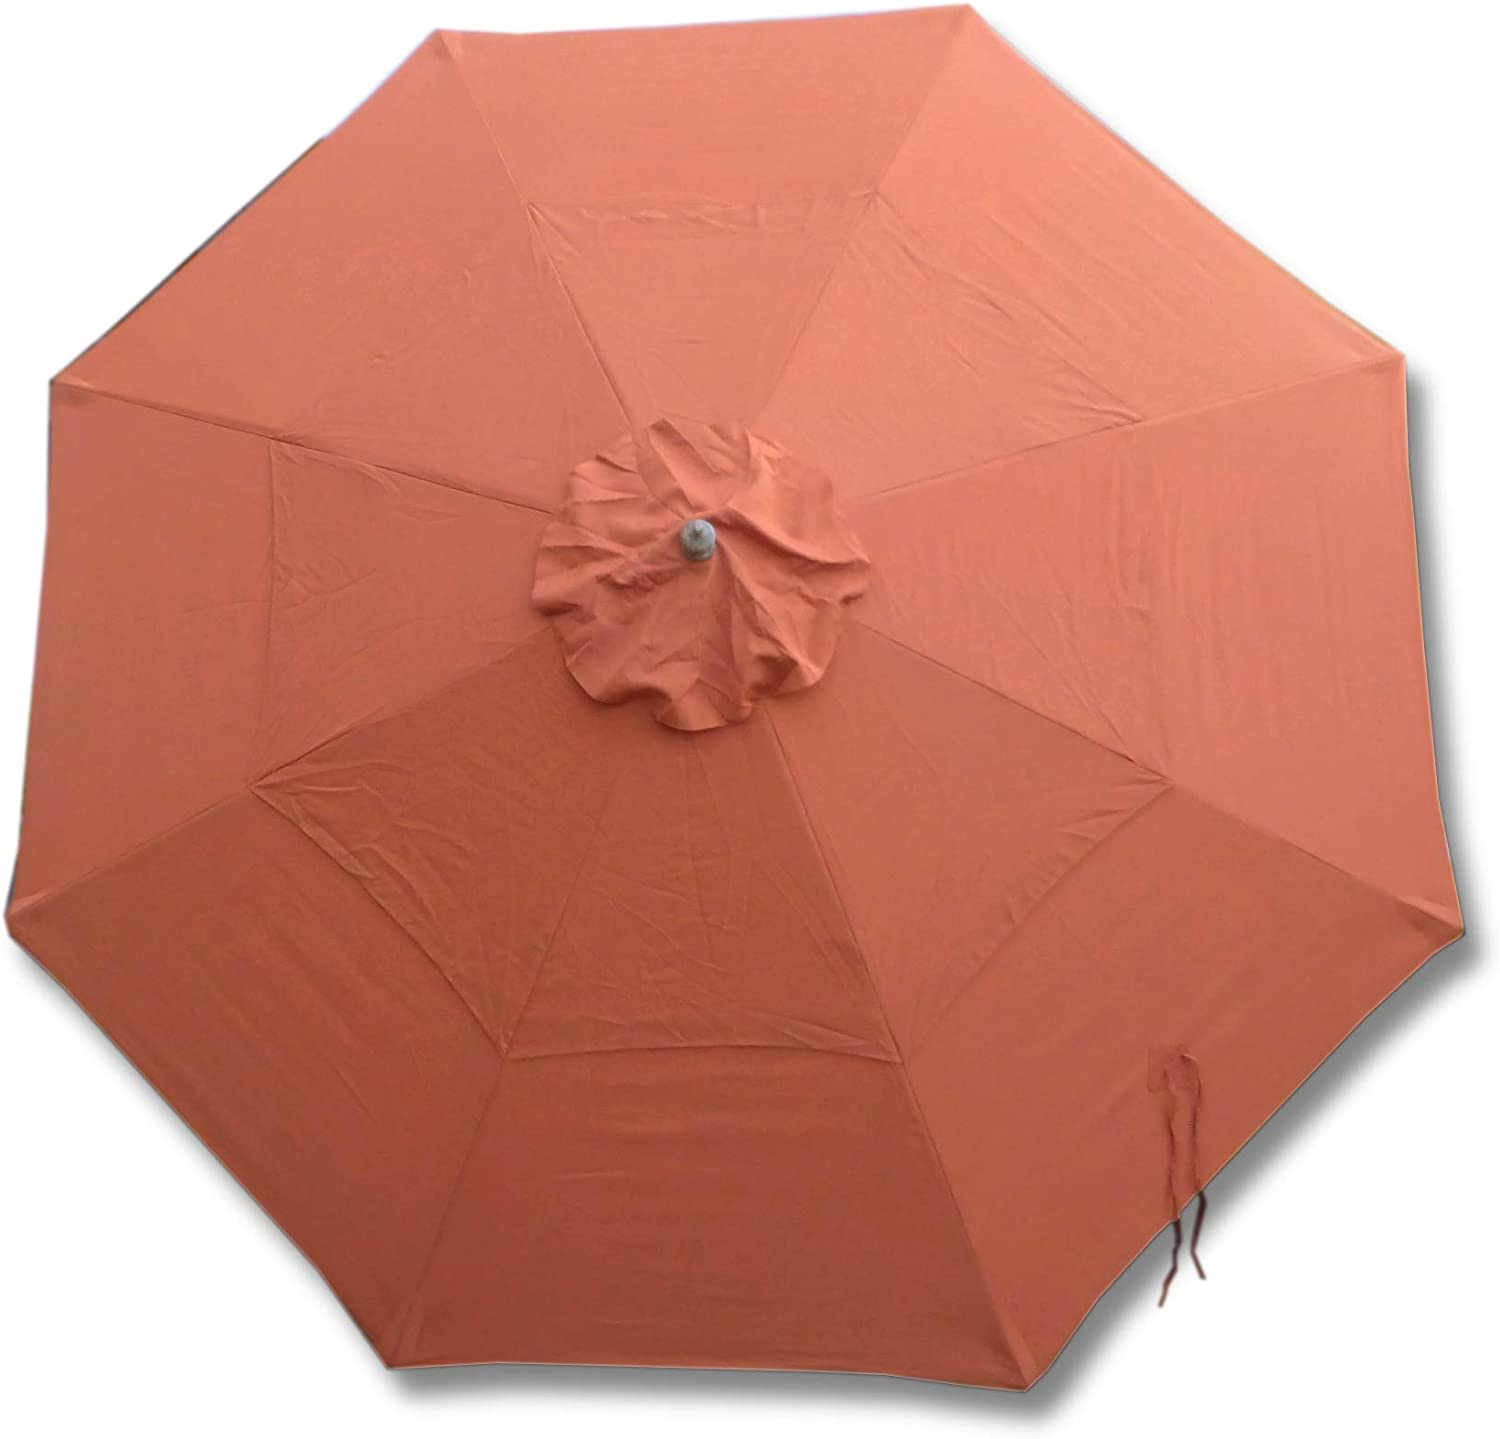 Formosa Covers Double Vented Replacement Umbrella Canopy for 11ft 8 Ribs in Terra (Canopy Only)